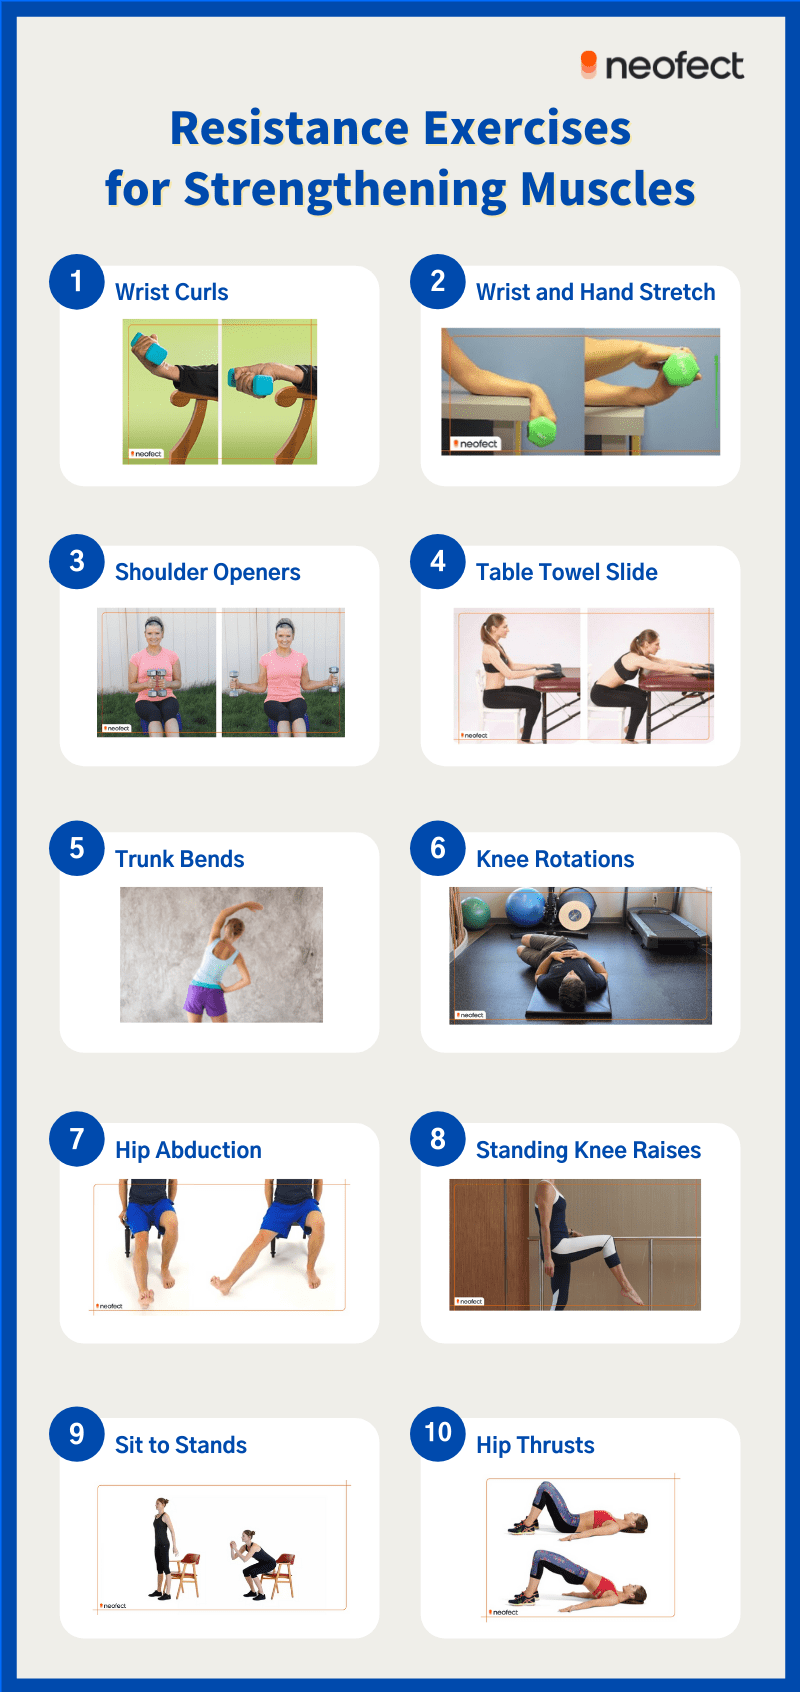 Resistance Exercises for Strengthening Muscles